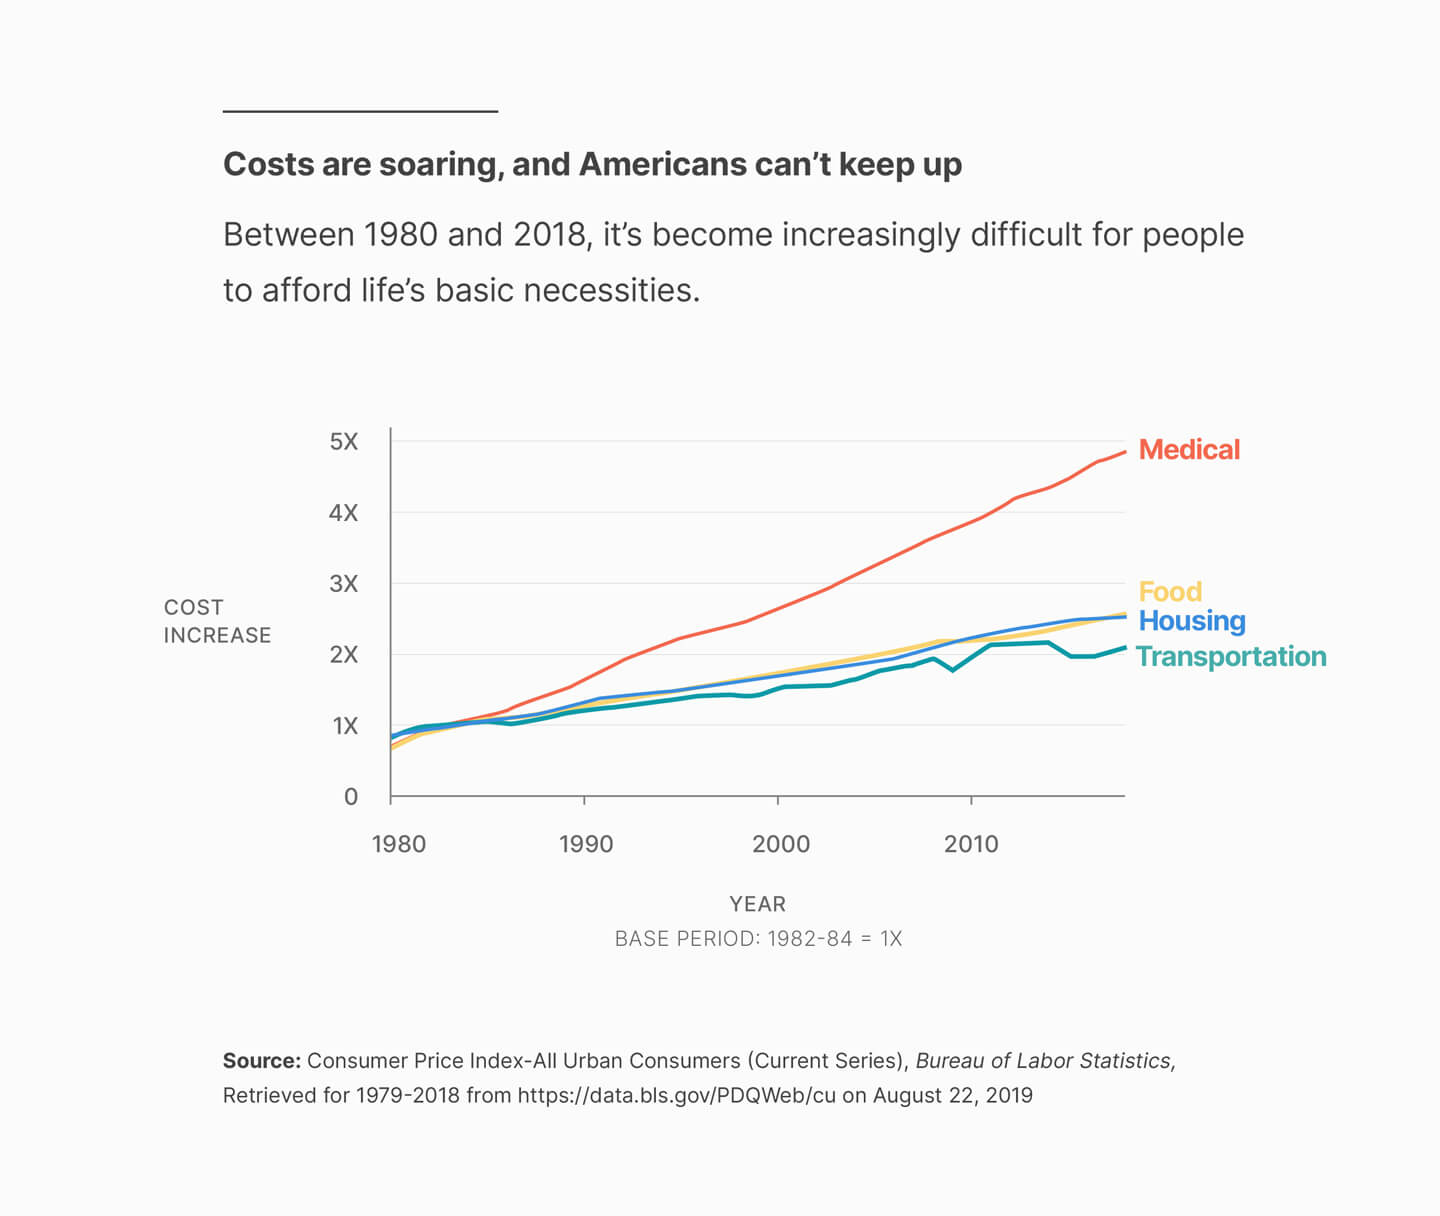 Costs are soaring but wages have stayed the same